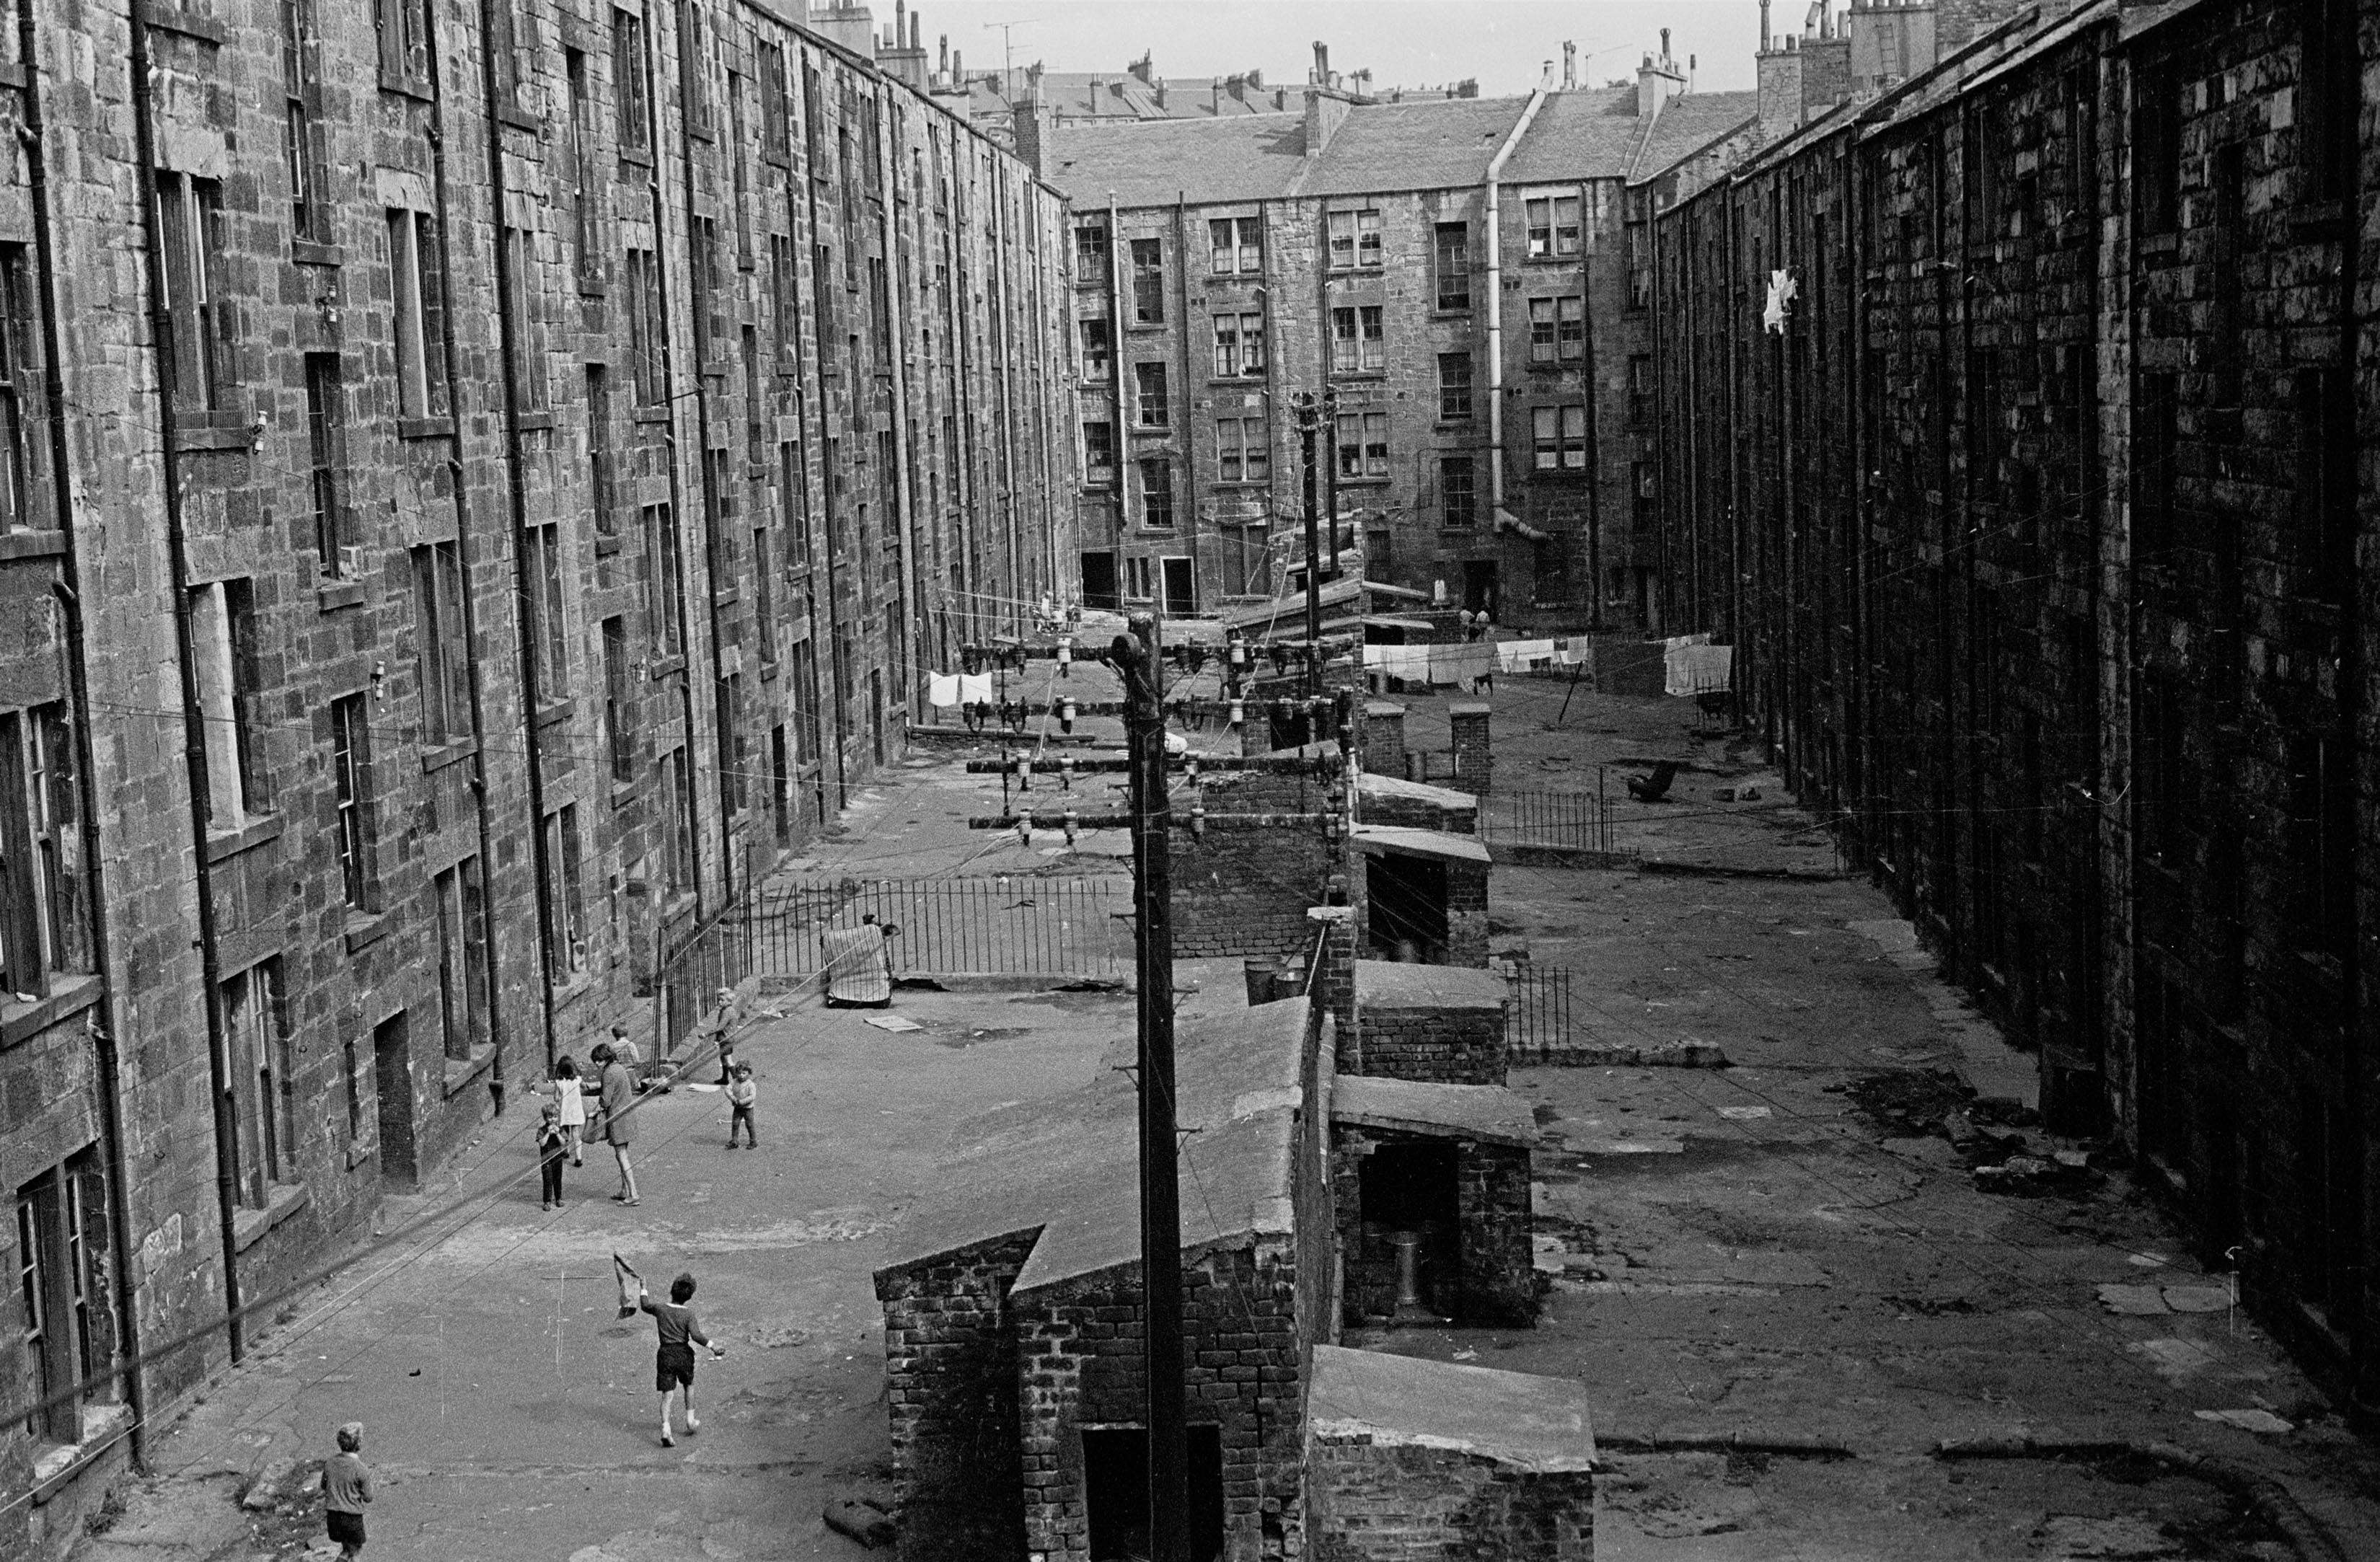 The slum tenements of Glasgow, Scotland